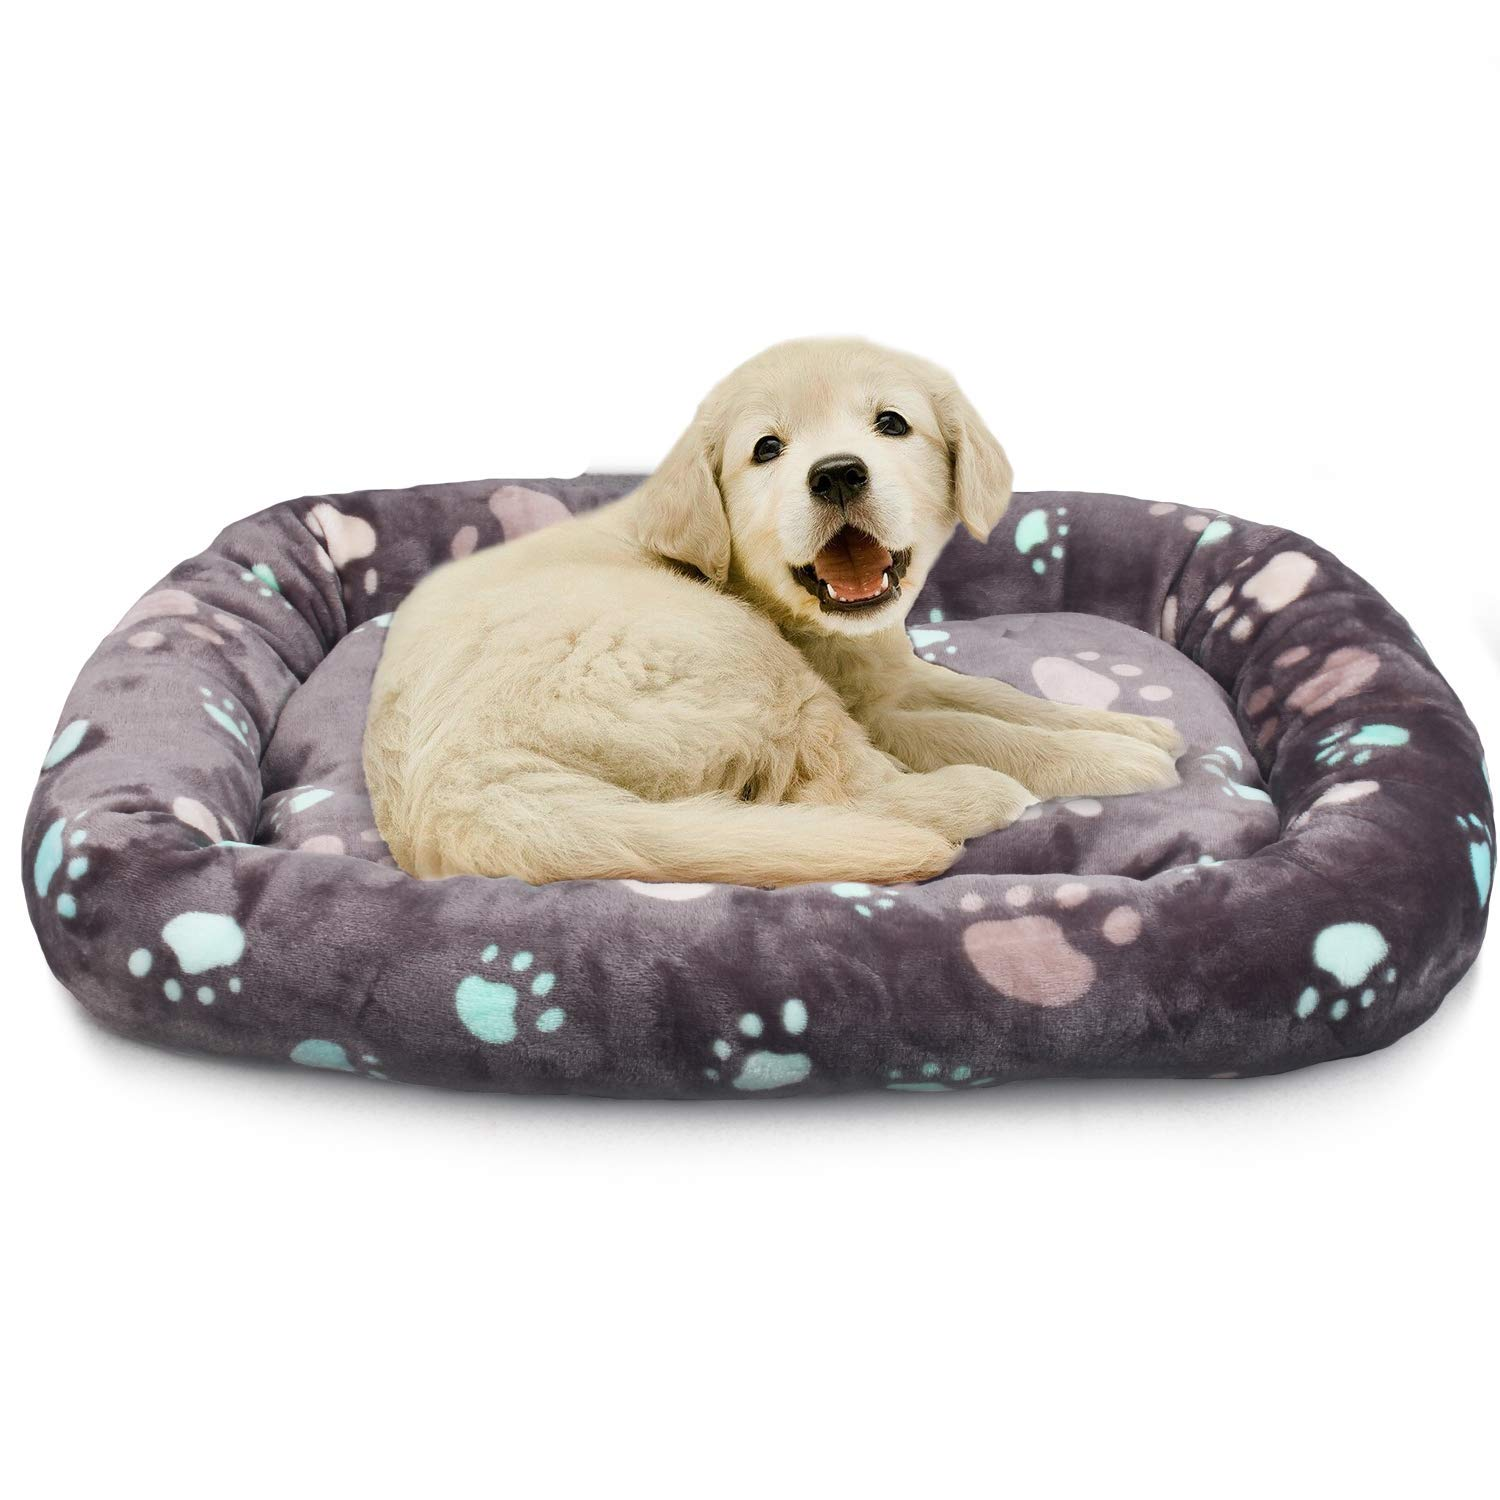 Allisandro Dog Bed | Anti-Slip Soft Pet Crate Kennel Pad - Washable Dog Mattress Pet Bed for Dogs & Cats, Grey L:33.4x22.8x4.7